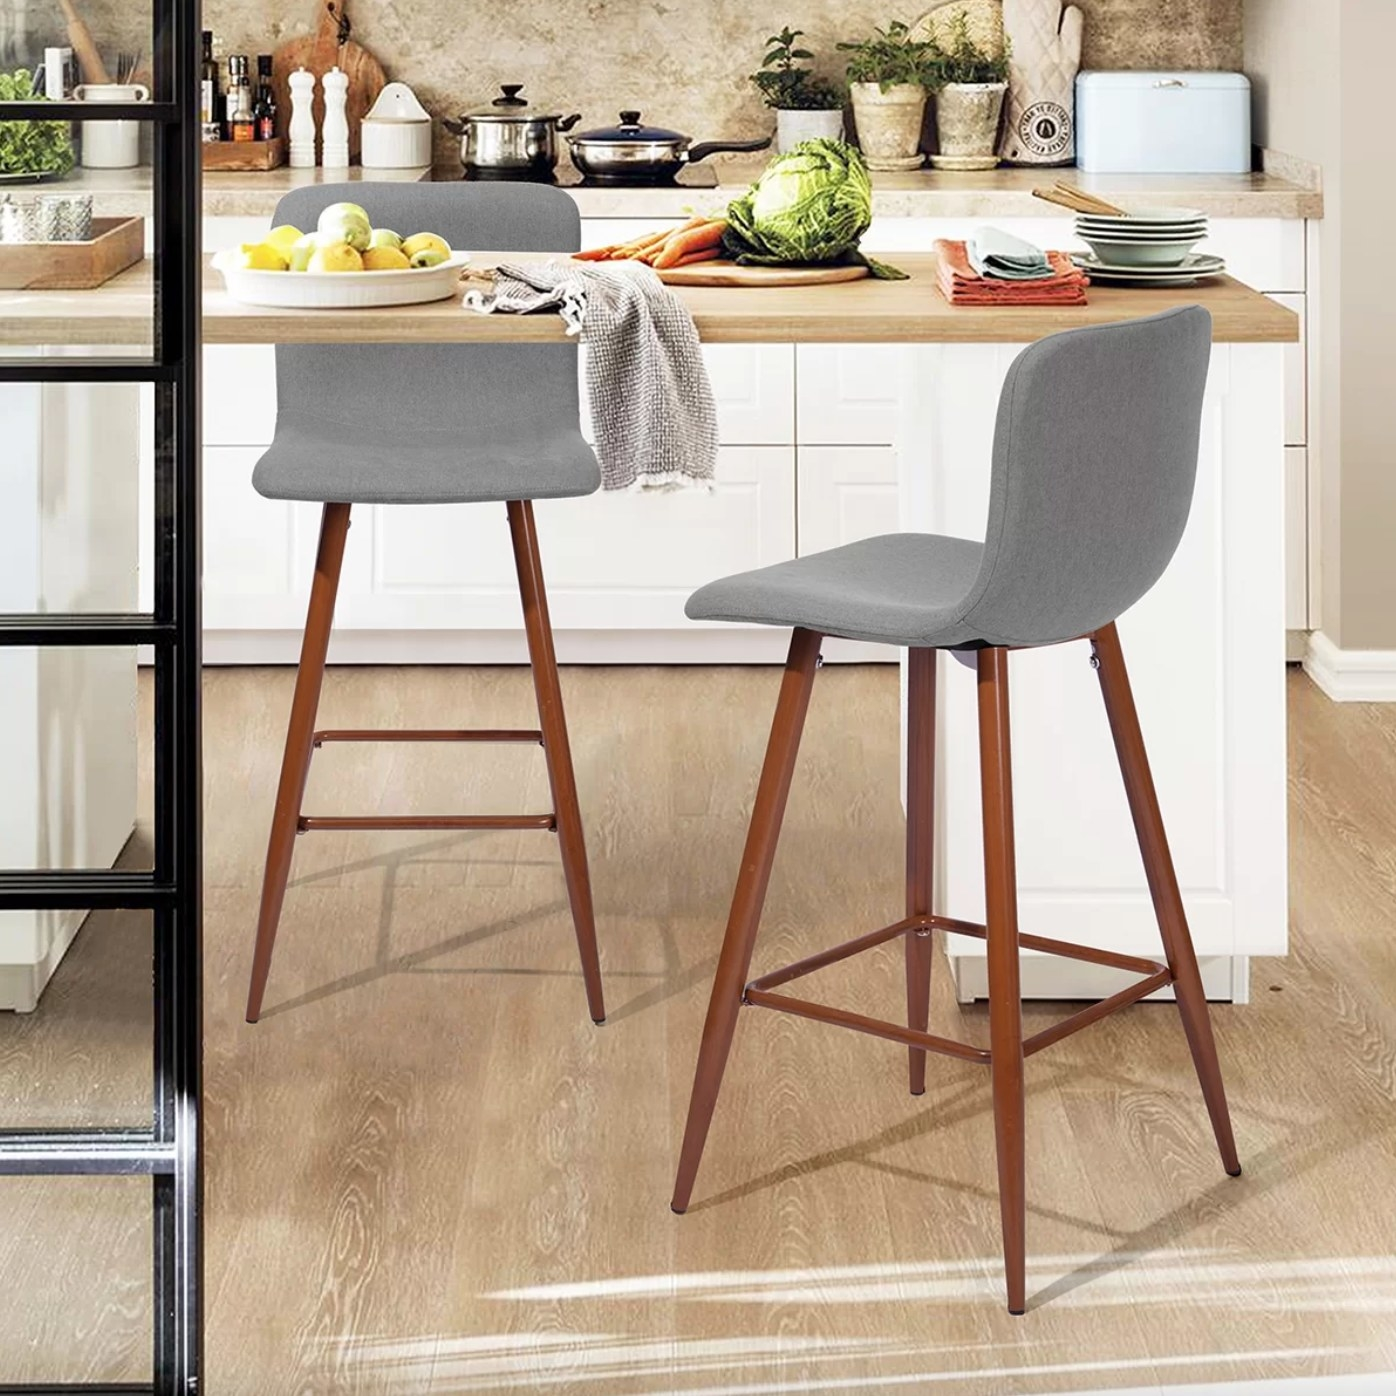 the set of two bar and counter stools in gray